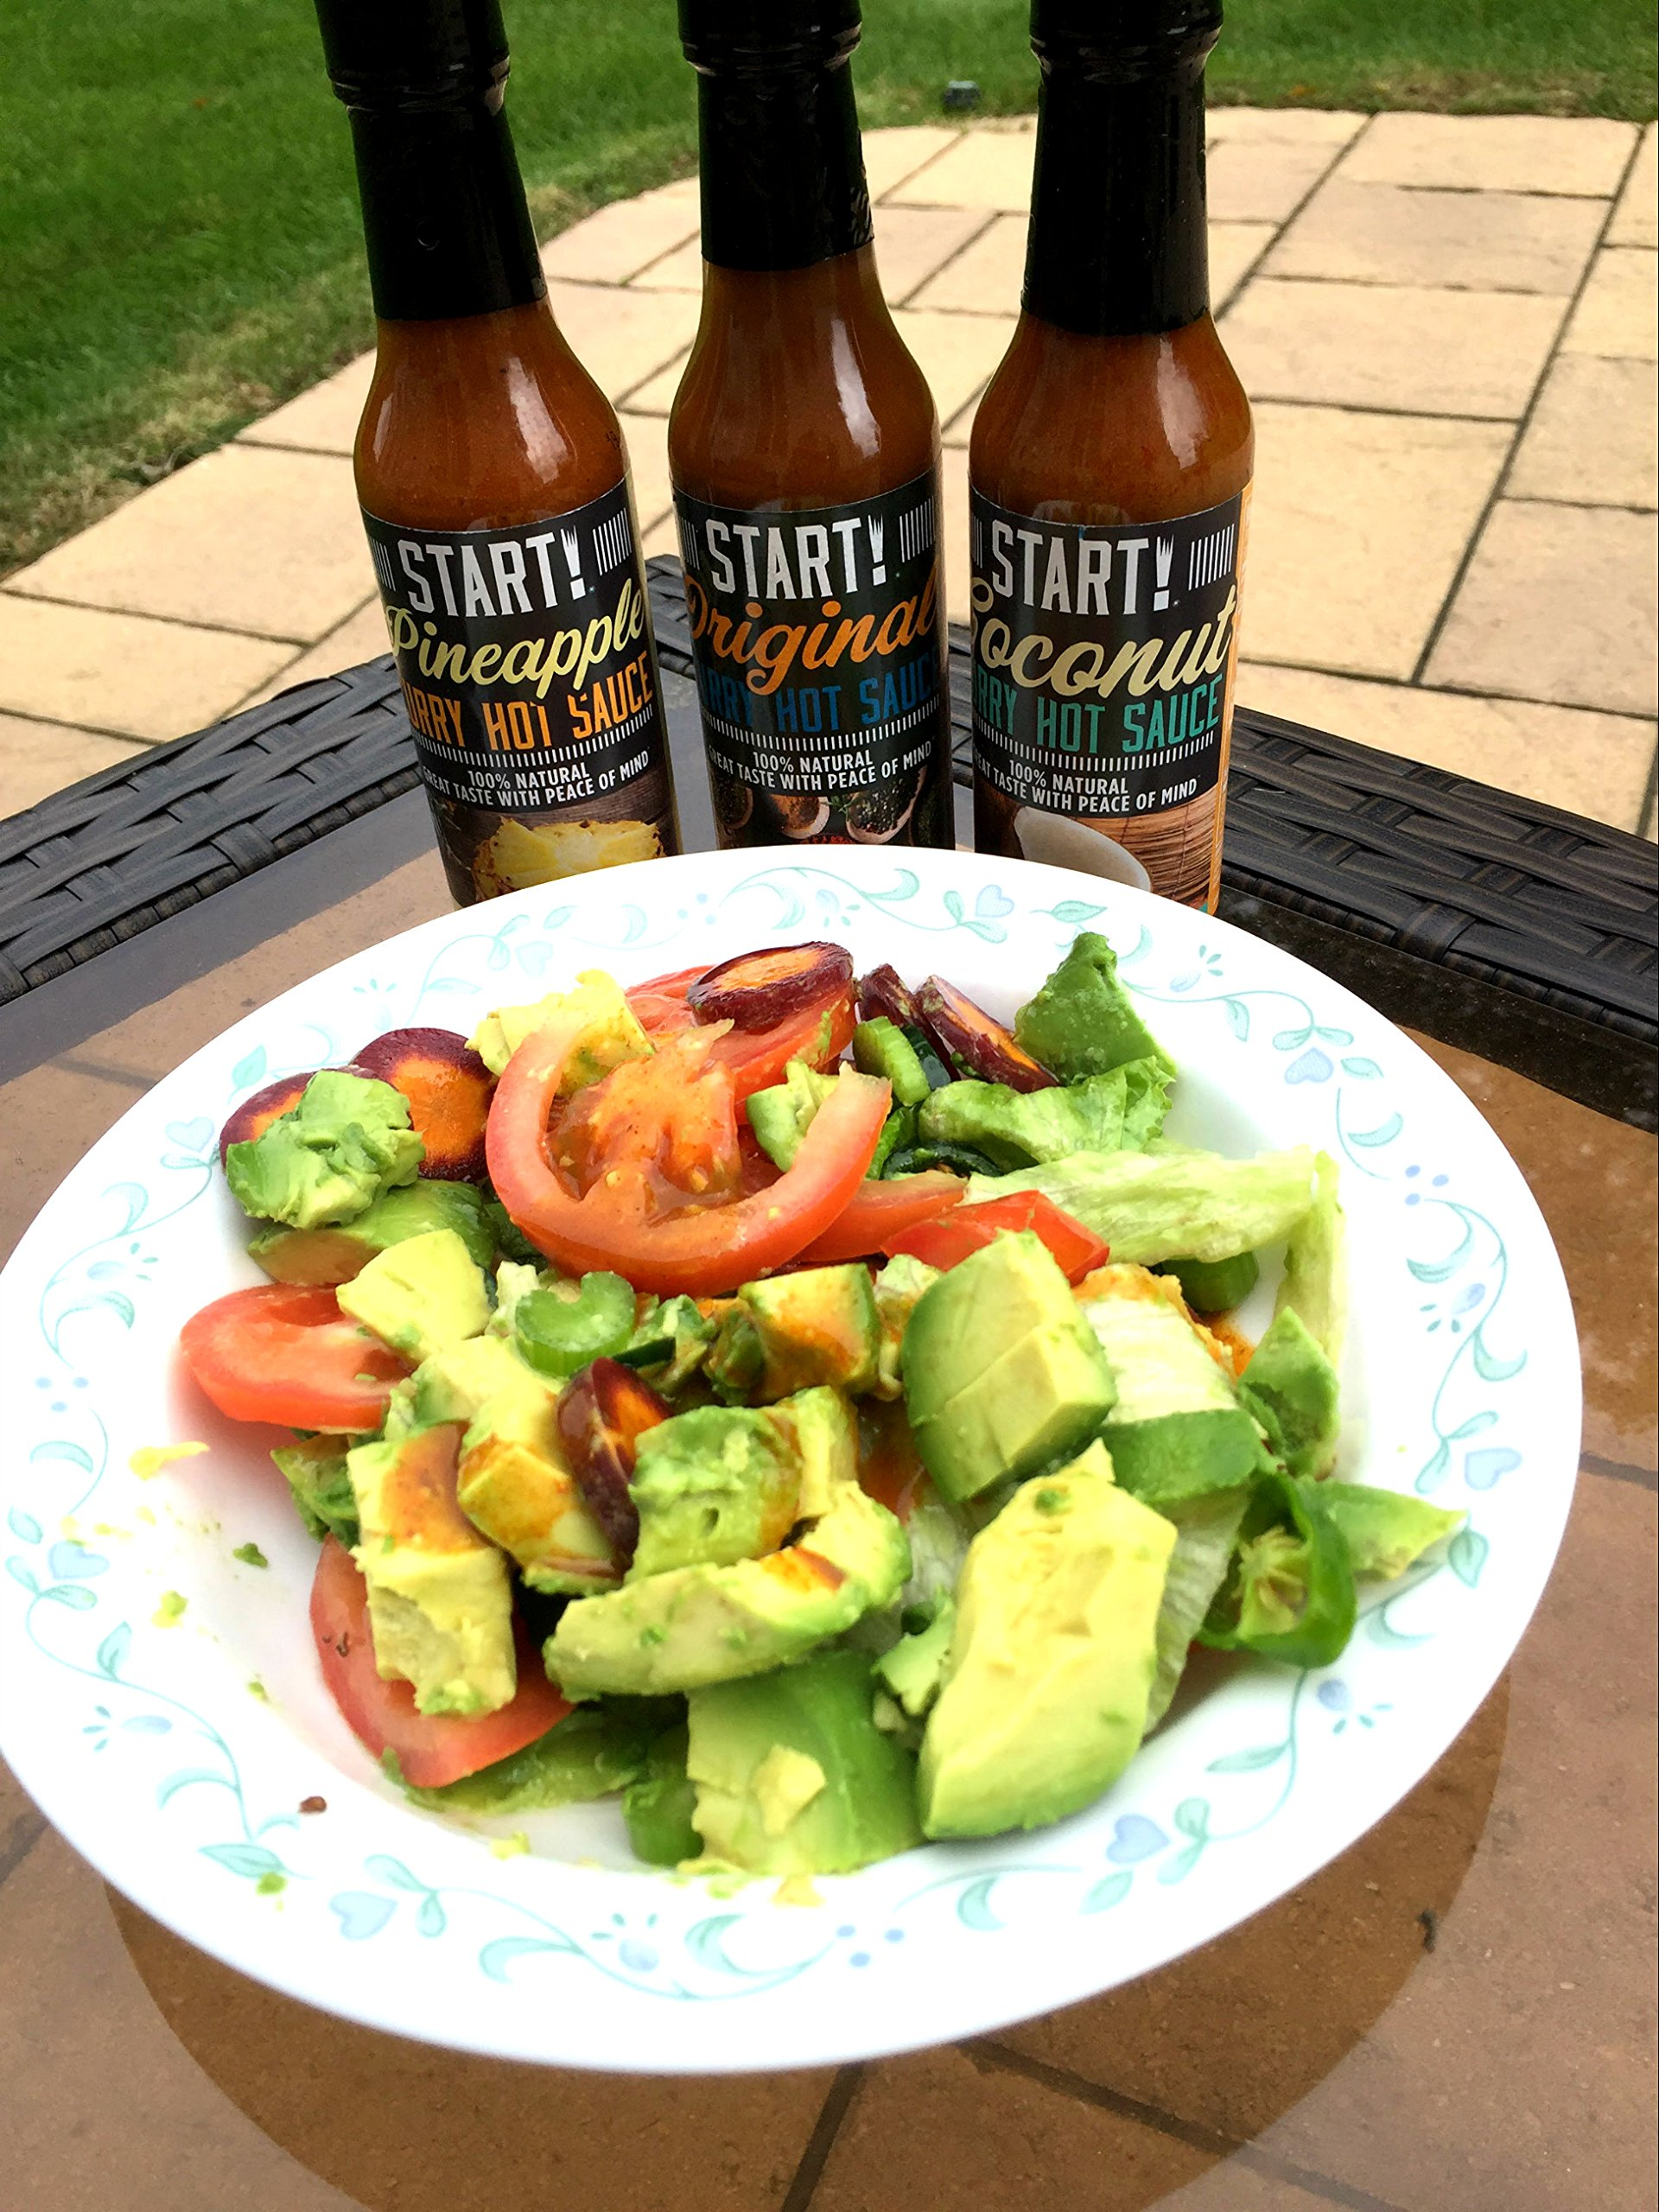 START! Curry Hot Sauce - Variety Sampler Party Pack - Original, Coconut, and Pineapple Flavors - Vegan + Gluten Free - Everyday Gourmet Light Spice (12 pack) by Start (Image #5)